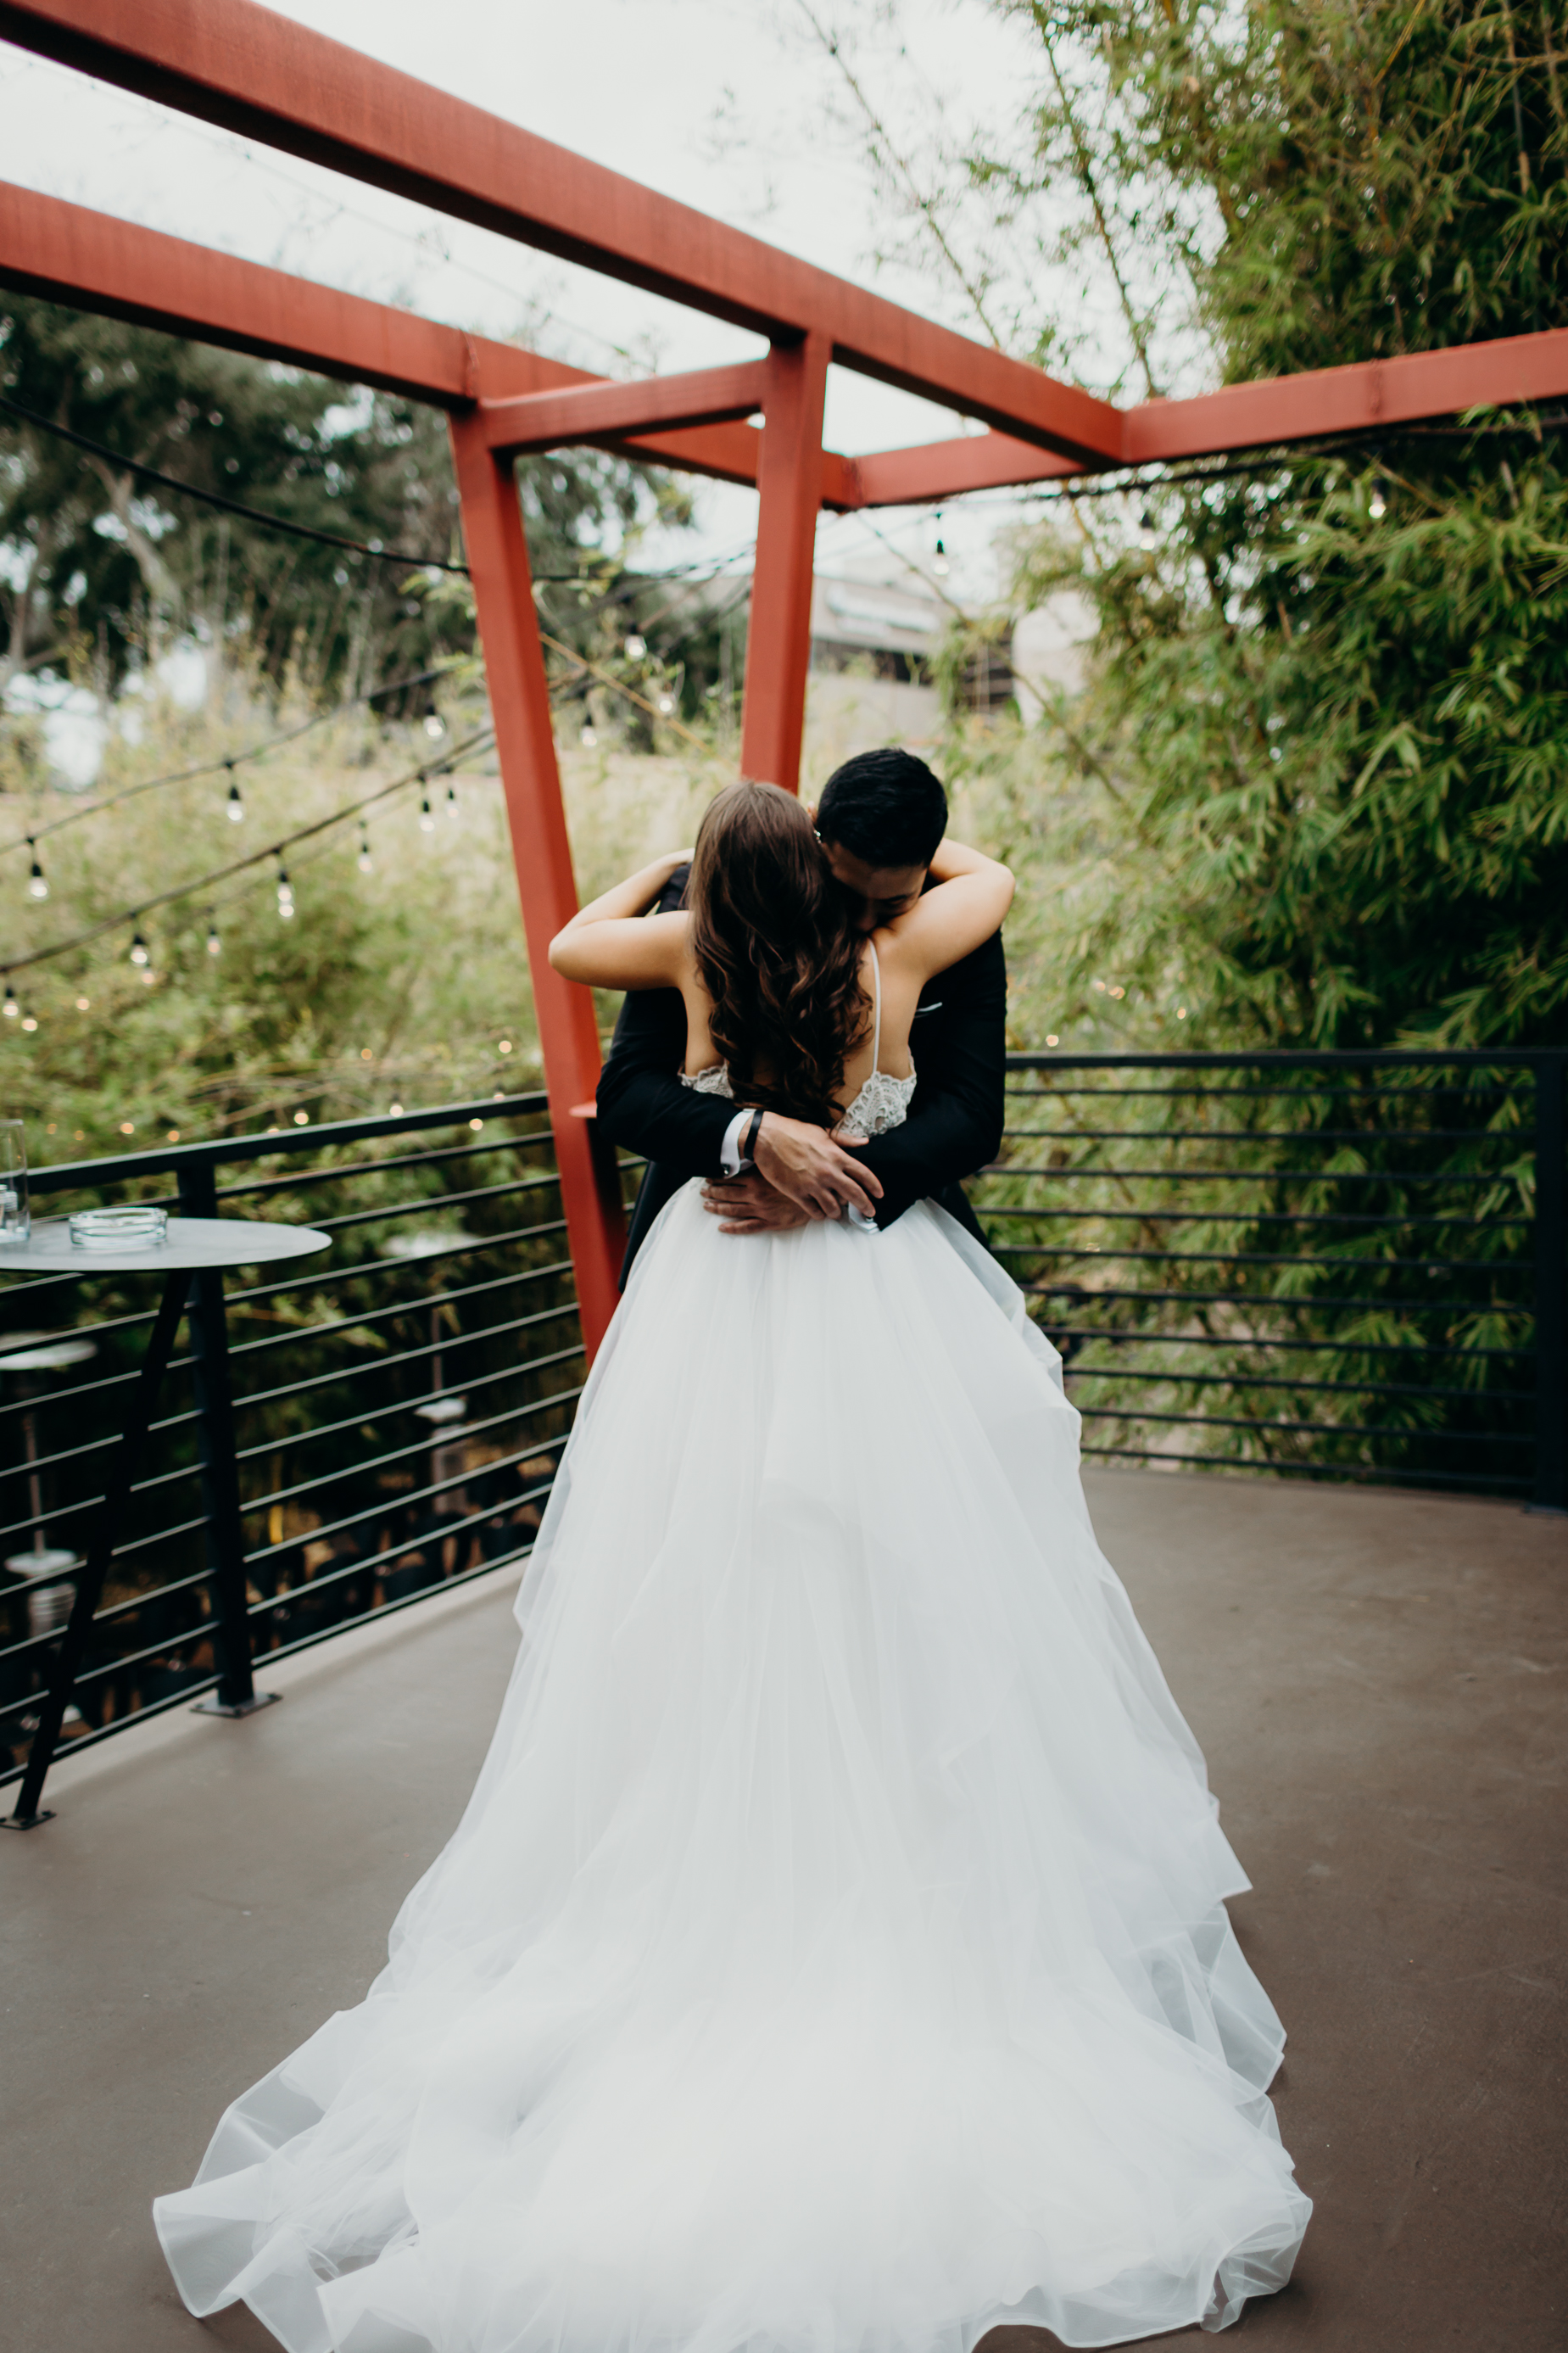 Gianna Keiko Atlanta San Francisco NYC Wedding Engagement Wedding Elopement Photographer_Sneak Peek-10.jpg